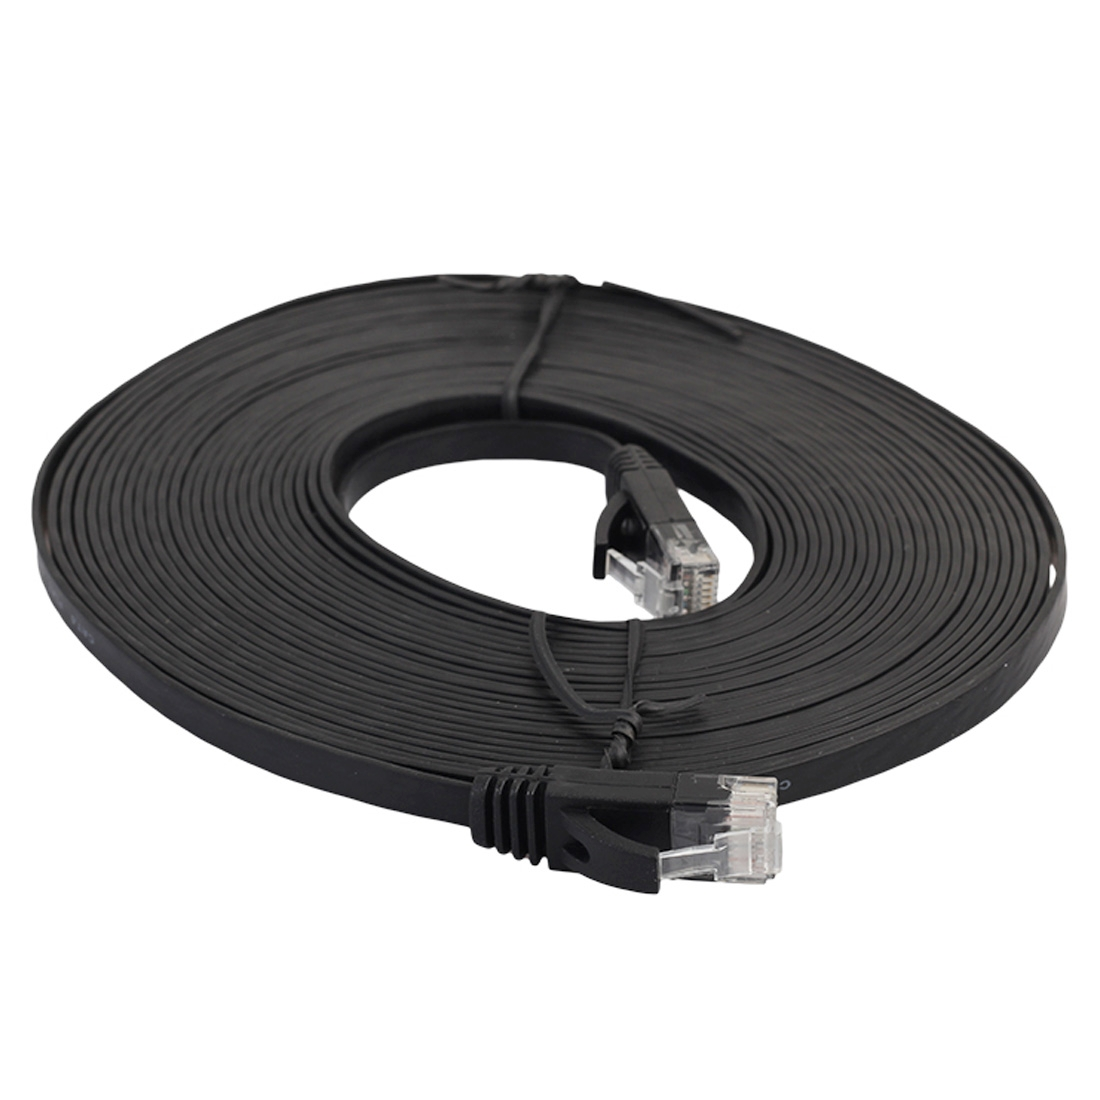 5m cat6 ultra thin flat ethernet network lan cable patch. Black Bedroom Furniture Sets. Home Design Ideas